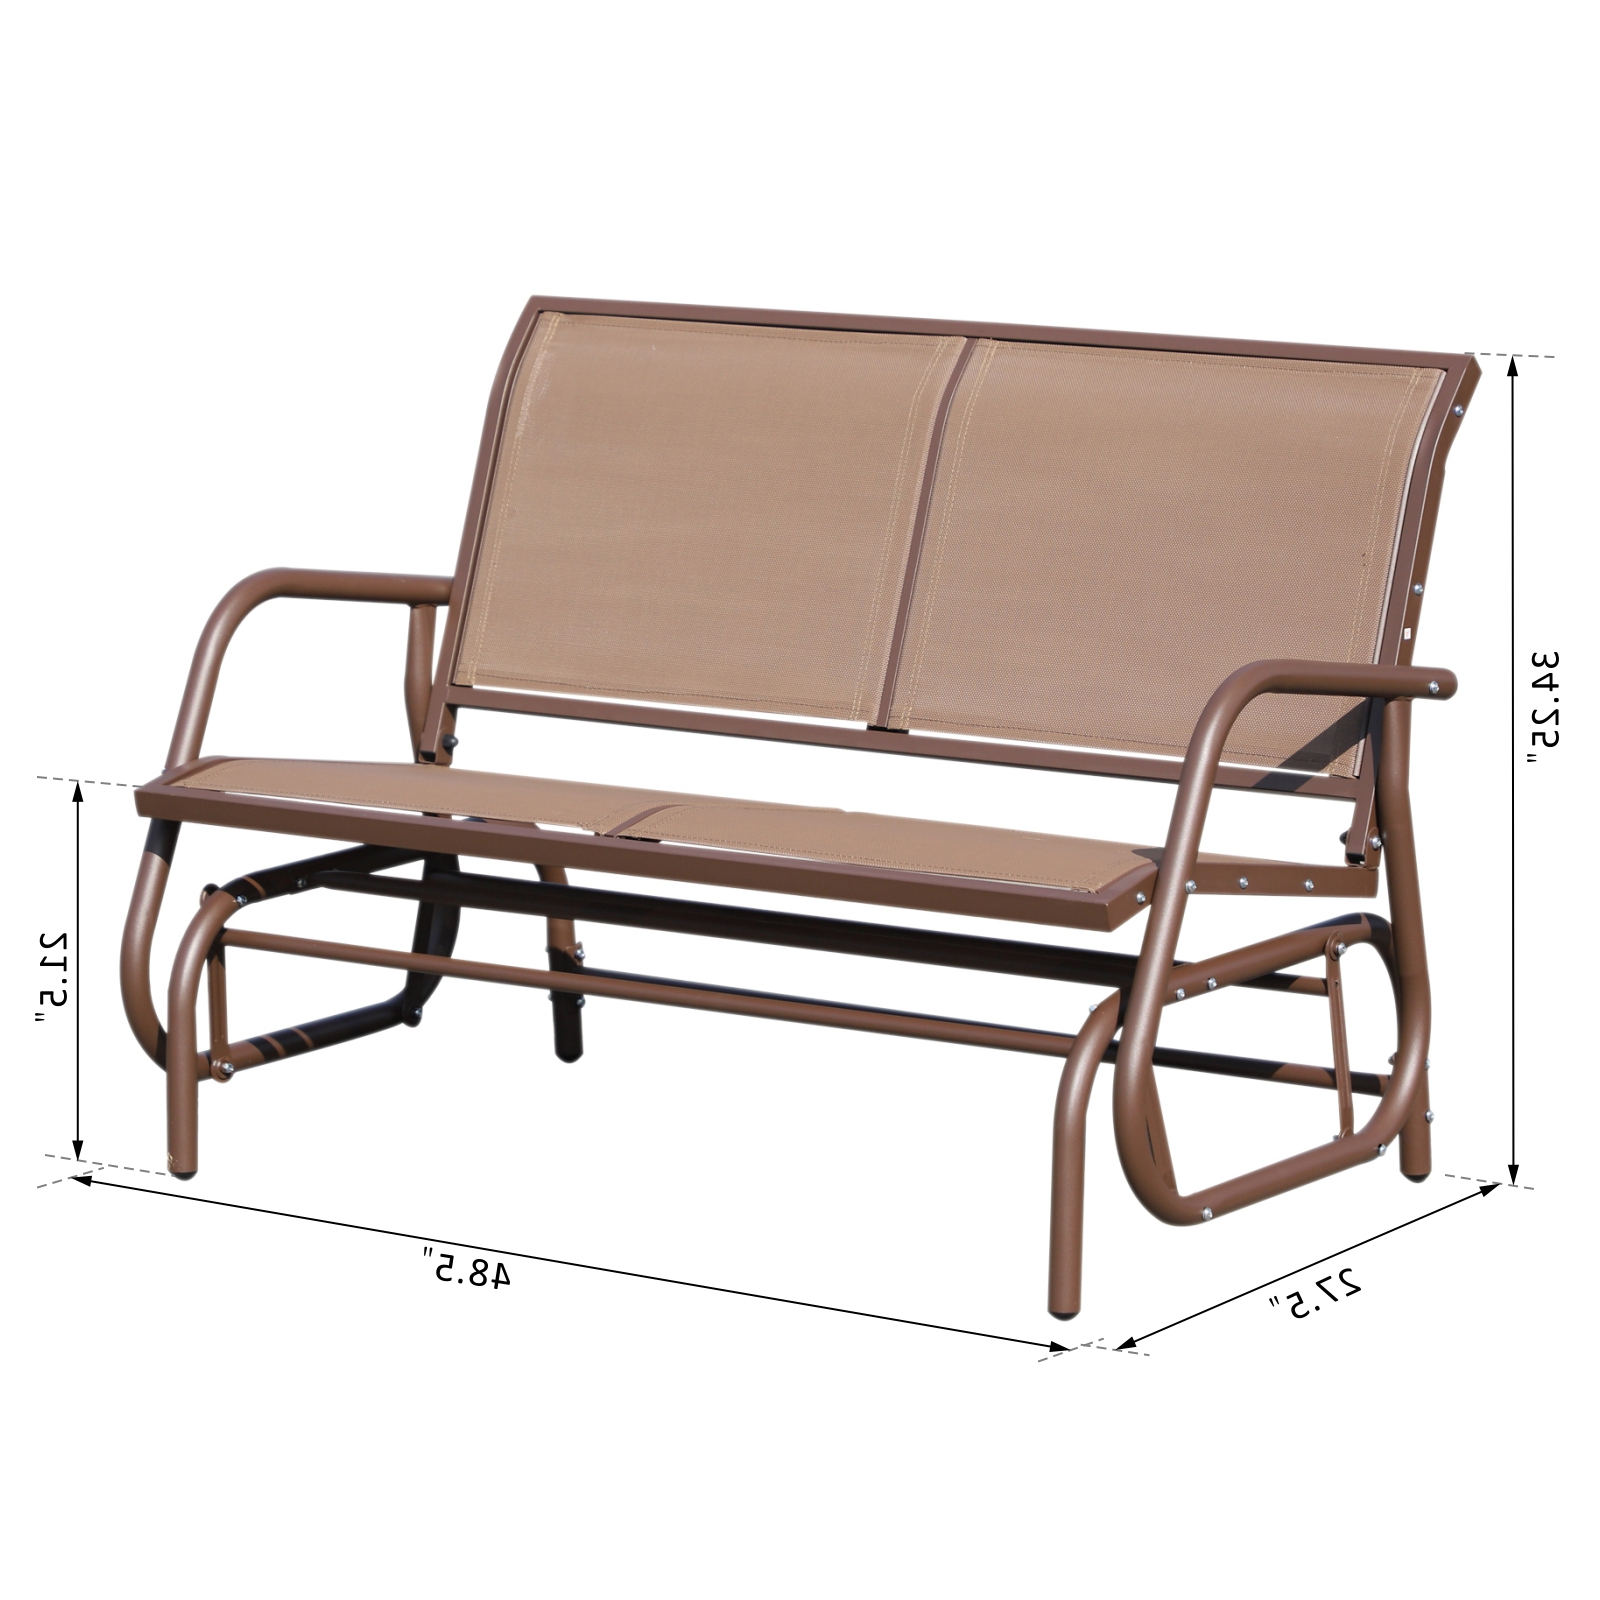 Current Outsunny Patio Double Glider Outdoor Steel Sling Fabric Bench Swing Chair R Heavy Duty Porch Rocker Garden Loveseat Brown For Rocking Love Seats Glider Swing Benches With Sturdy Frame (View 21 of 25)